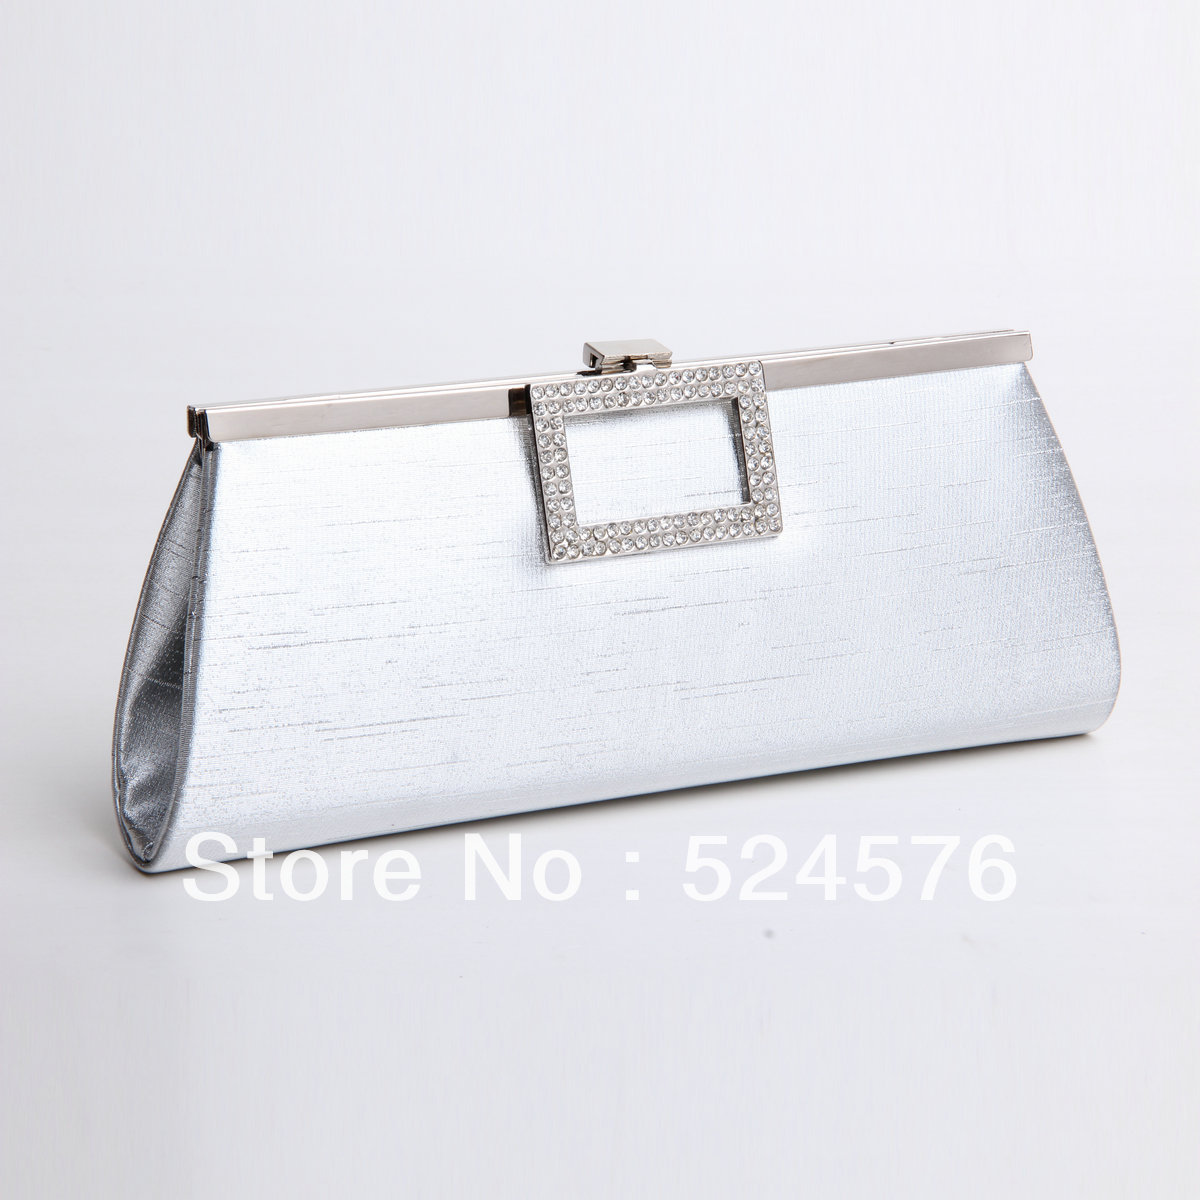 5039 silver evening bag fashion handbag women&#39;s clutch evening bag day clutch bag small(China (Mainland))